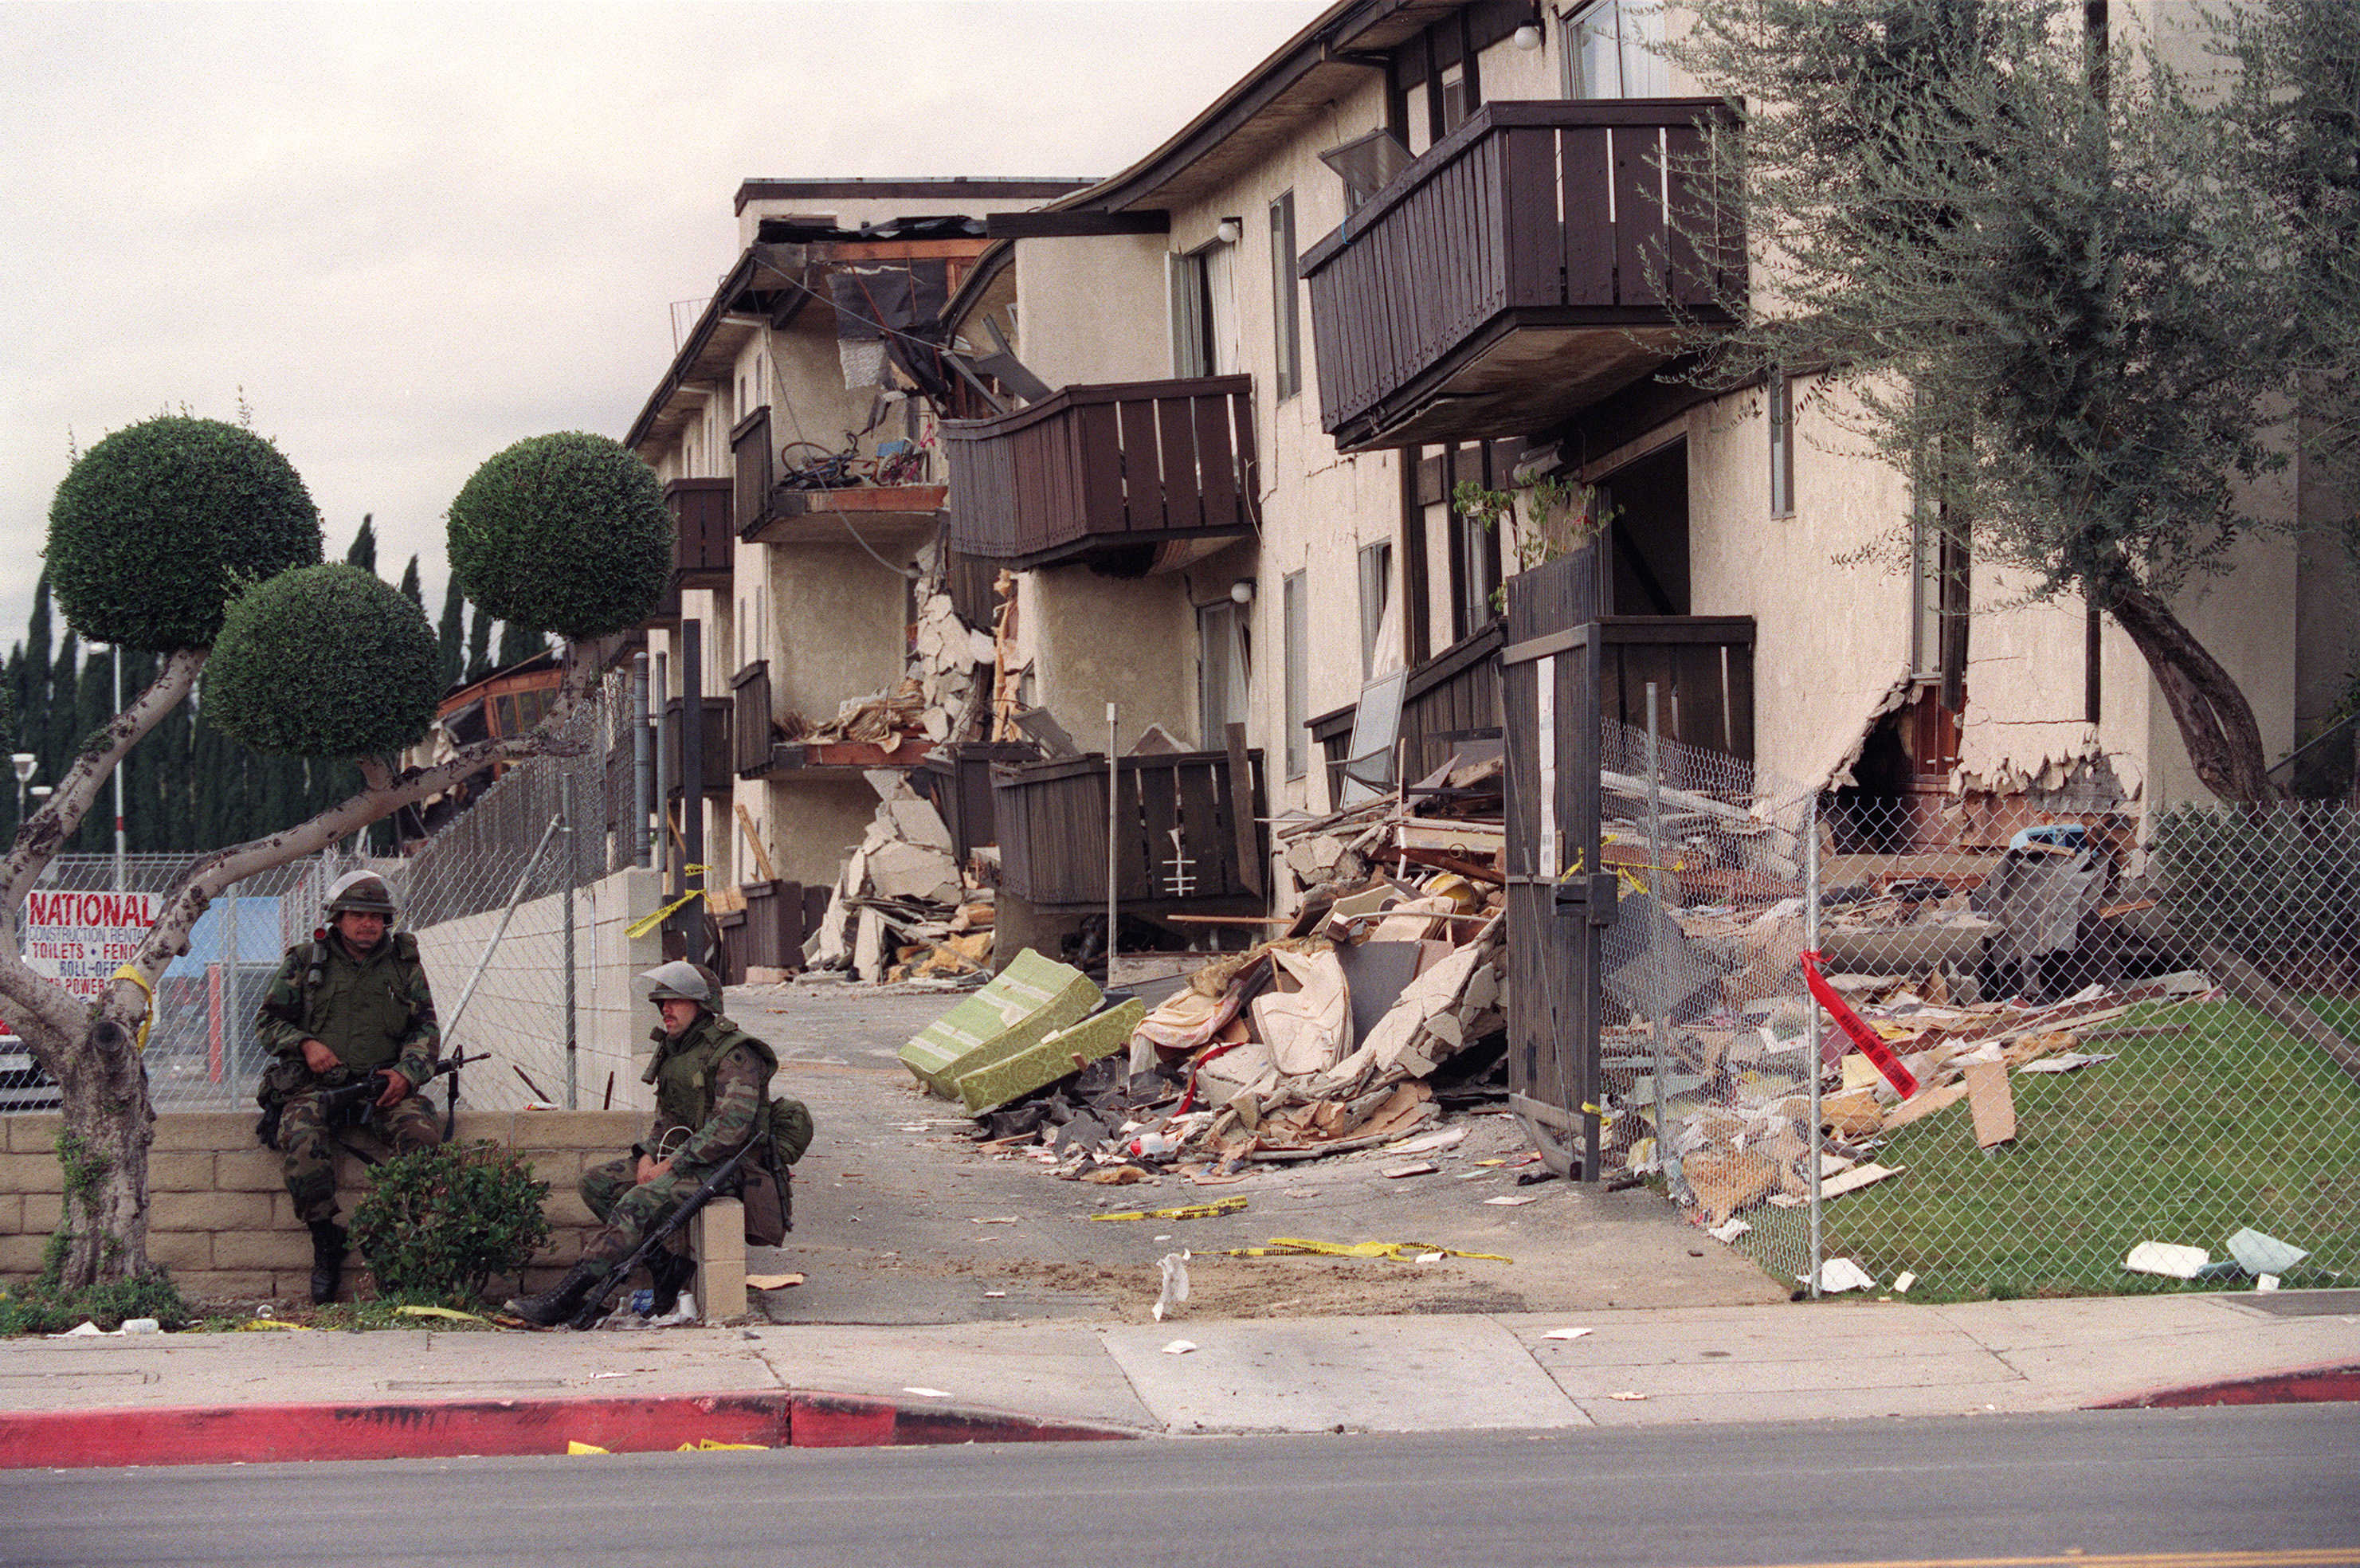 National Guard soldiers are posted in front of the Northridge Meadows apartments one week after 16 people died during an earthquake on Jan. 17, 1994. Residents were allowed to enter the condemned building for 15 minutes at a time to collect personel effects.